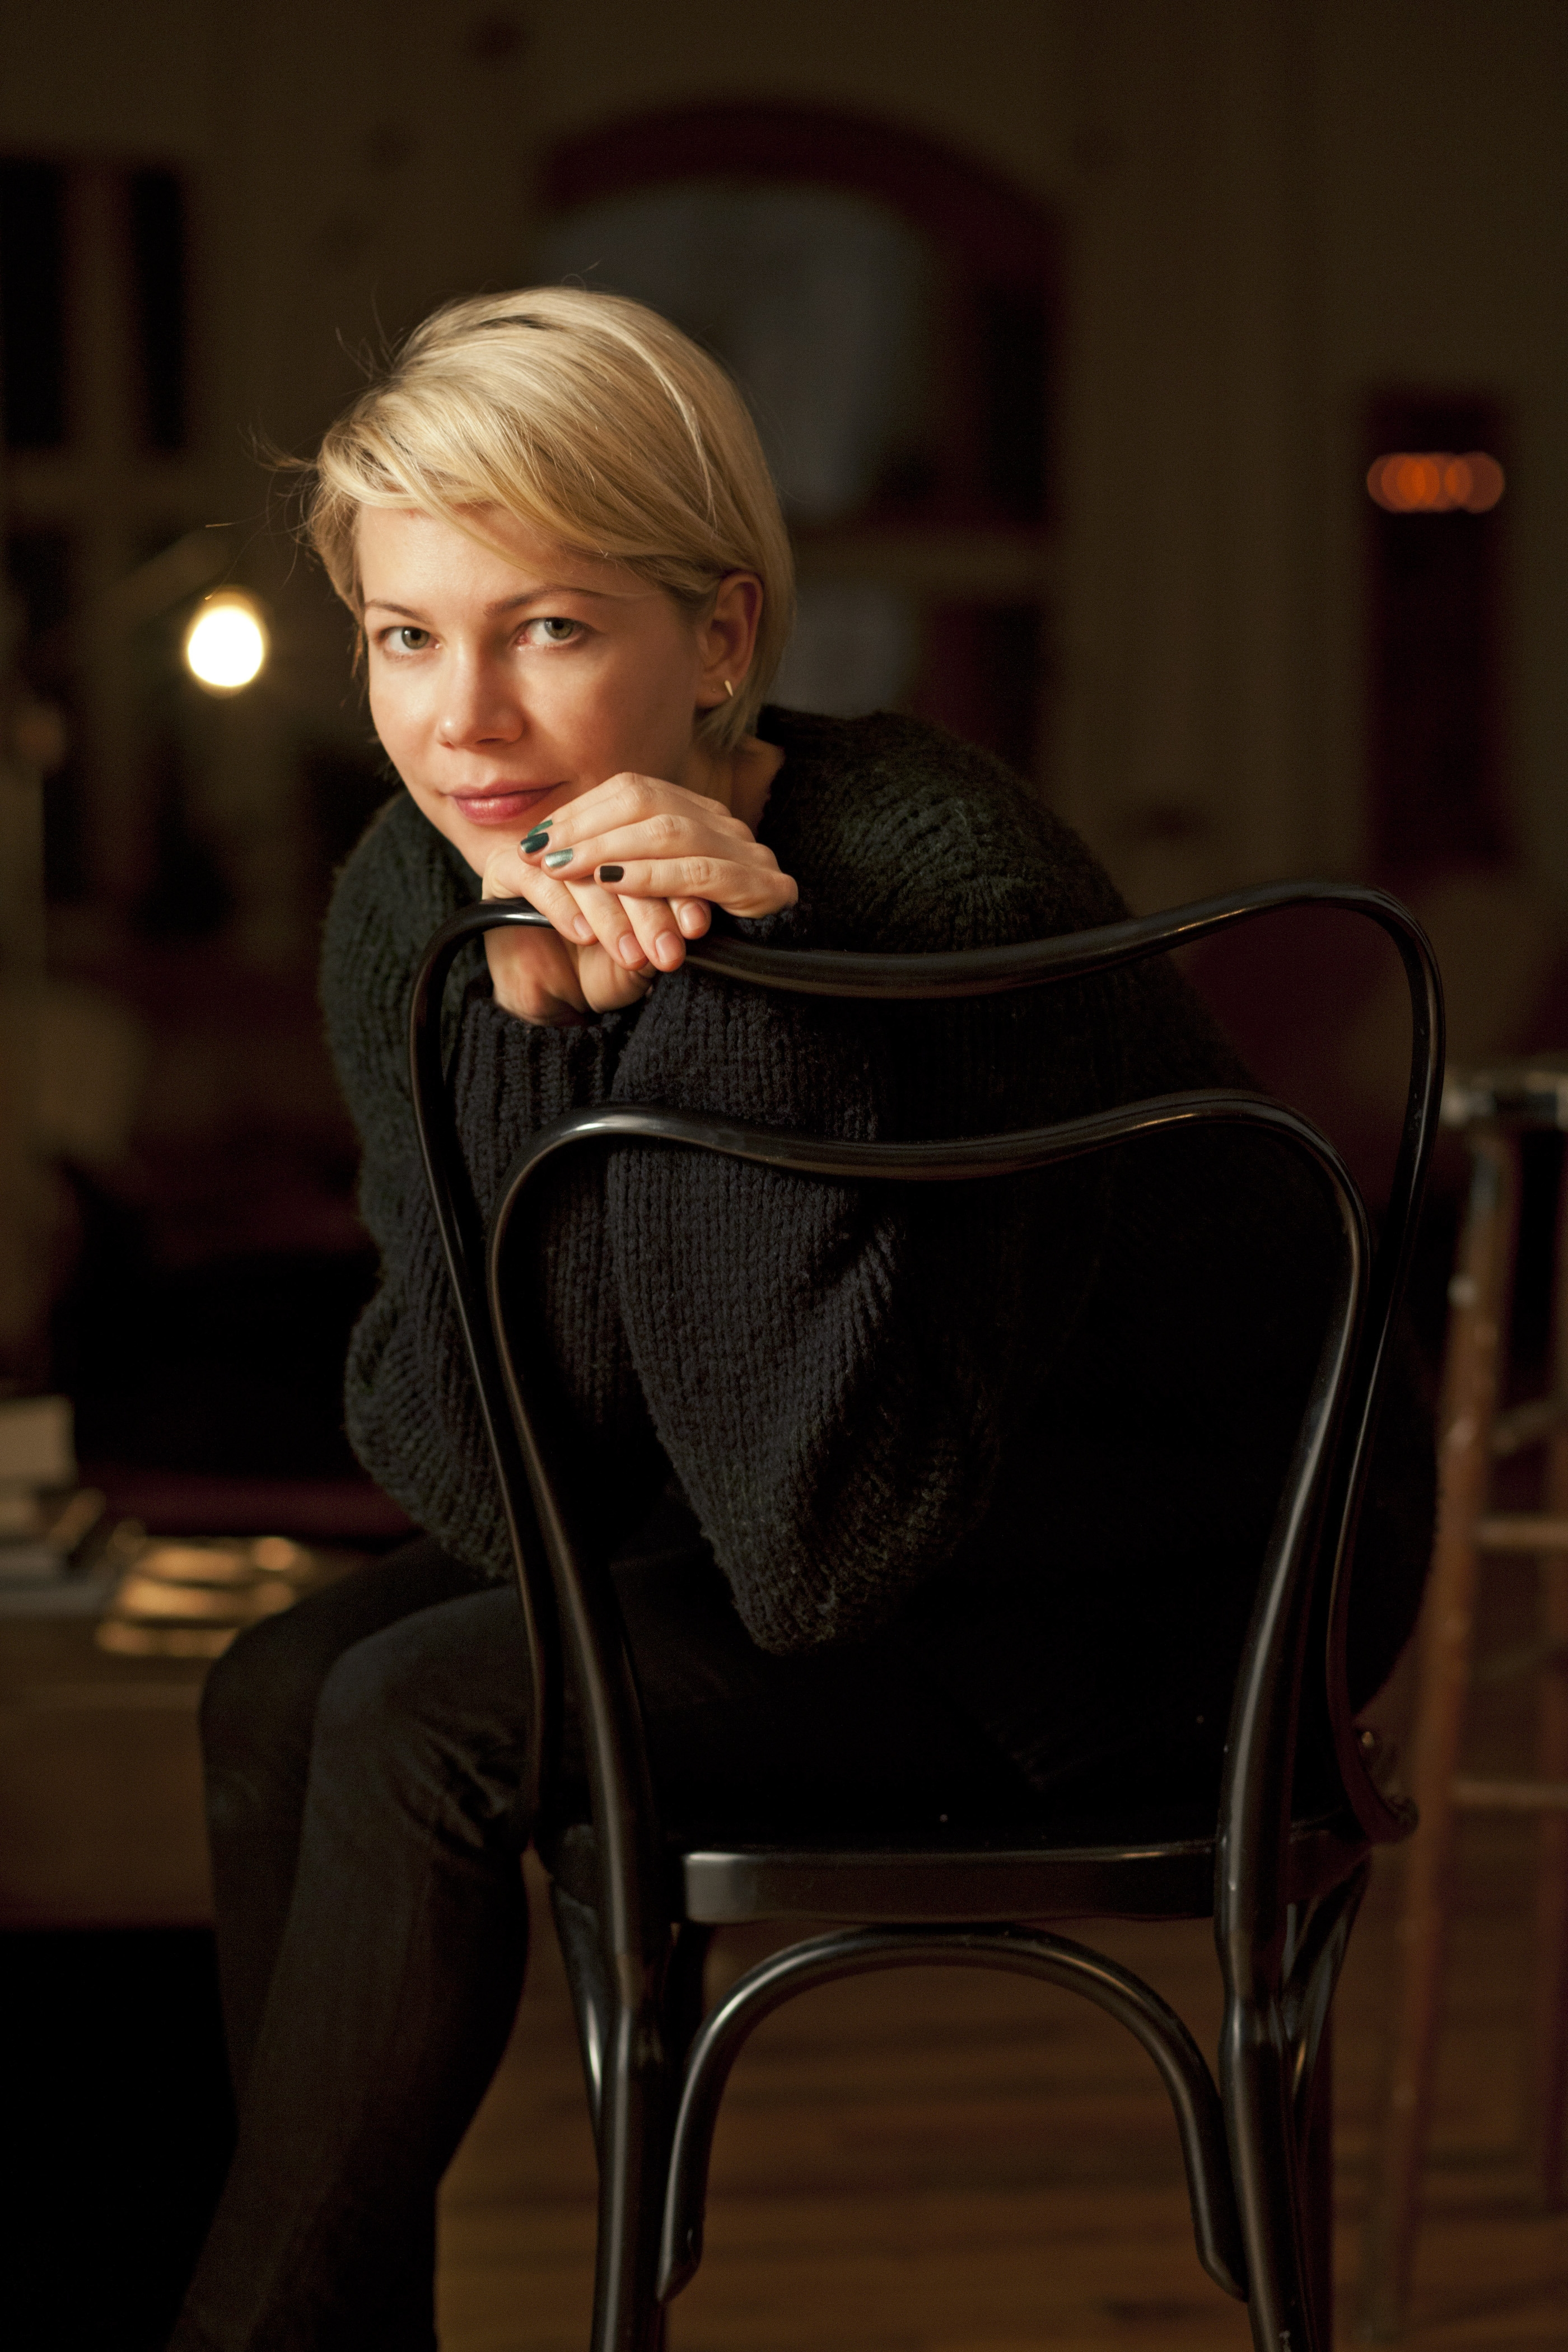 Michelle Williams, known for her movie and television work, is making her Broadway debut as Sally Bowles in the Roundabout Theater Company's resuscitation of its 1998 production of the musical. (Dan Estabrook/The New York Times) -- PHOTO MOVED IN ADVANCE AND NOT FOR USE - ONLINE OR IN PRINT - BEFORE MARCH 30, 2014.